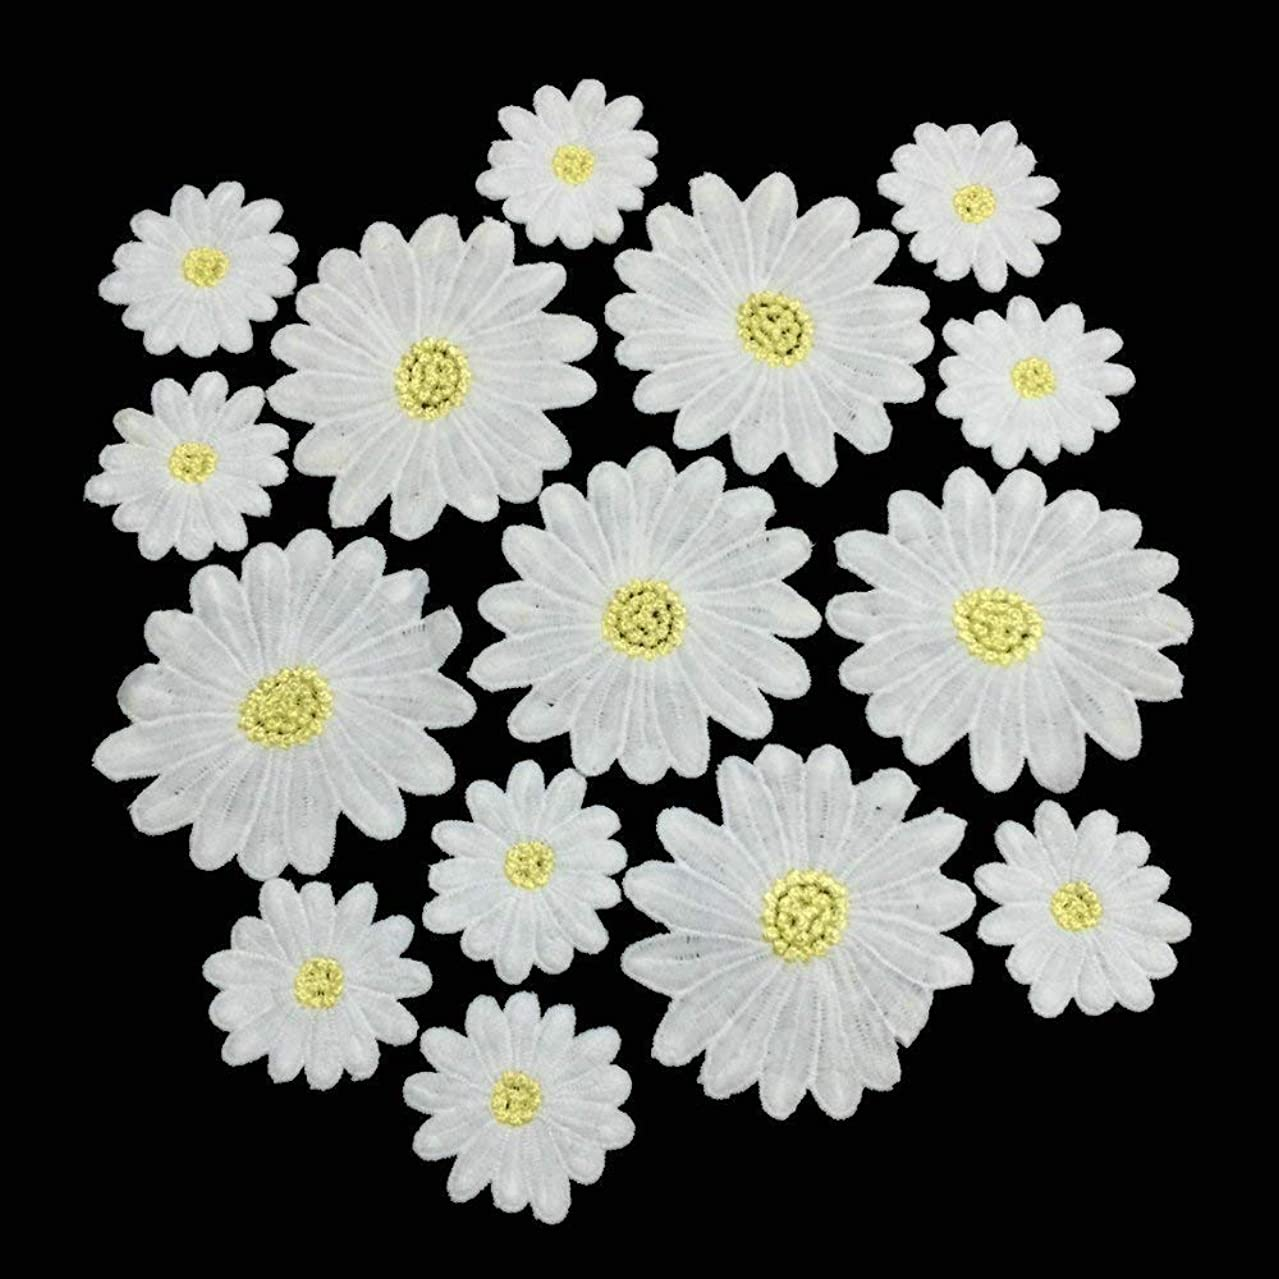 Daisy Flowers Embroidered Sew On Applique Floral Lace Patch Milk Fiber Sewing Trims Clothes Wedding Dress Craft DIY (White)